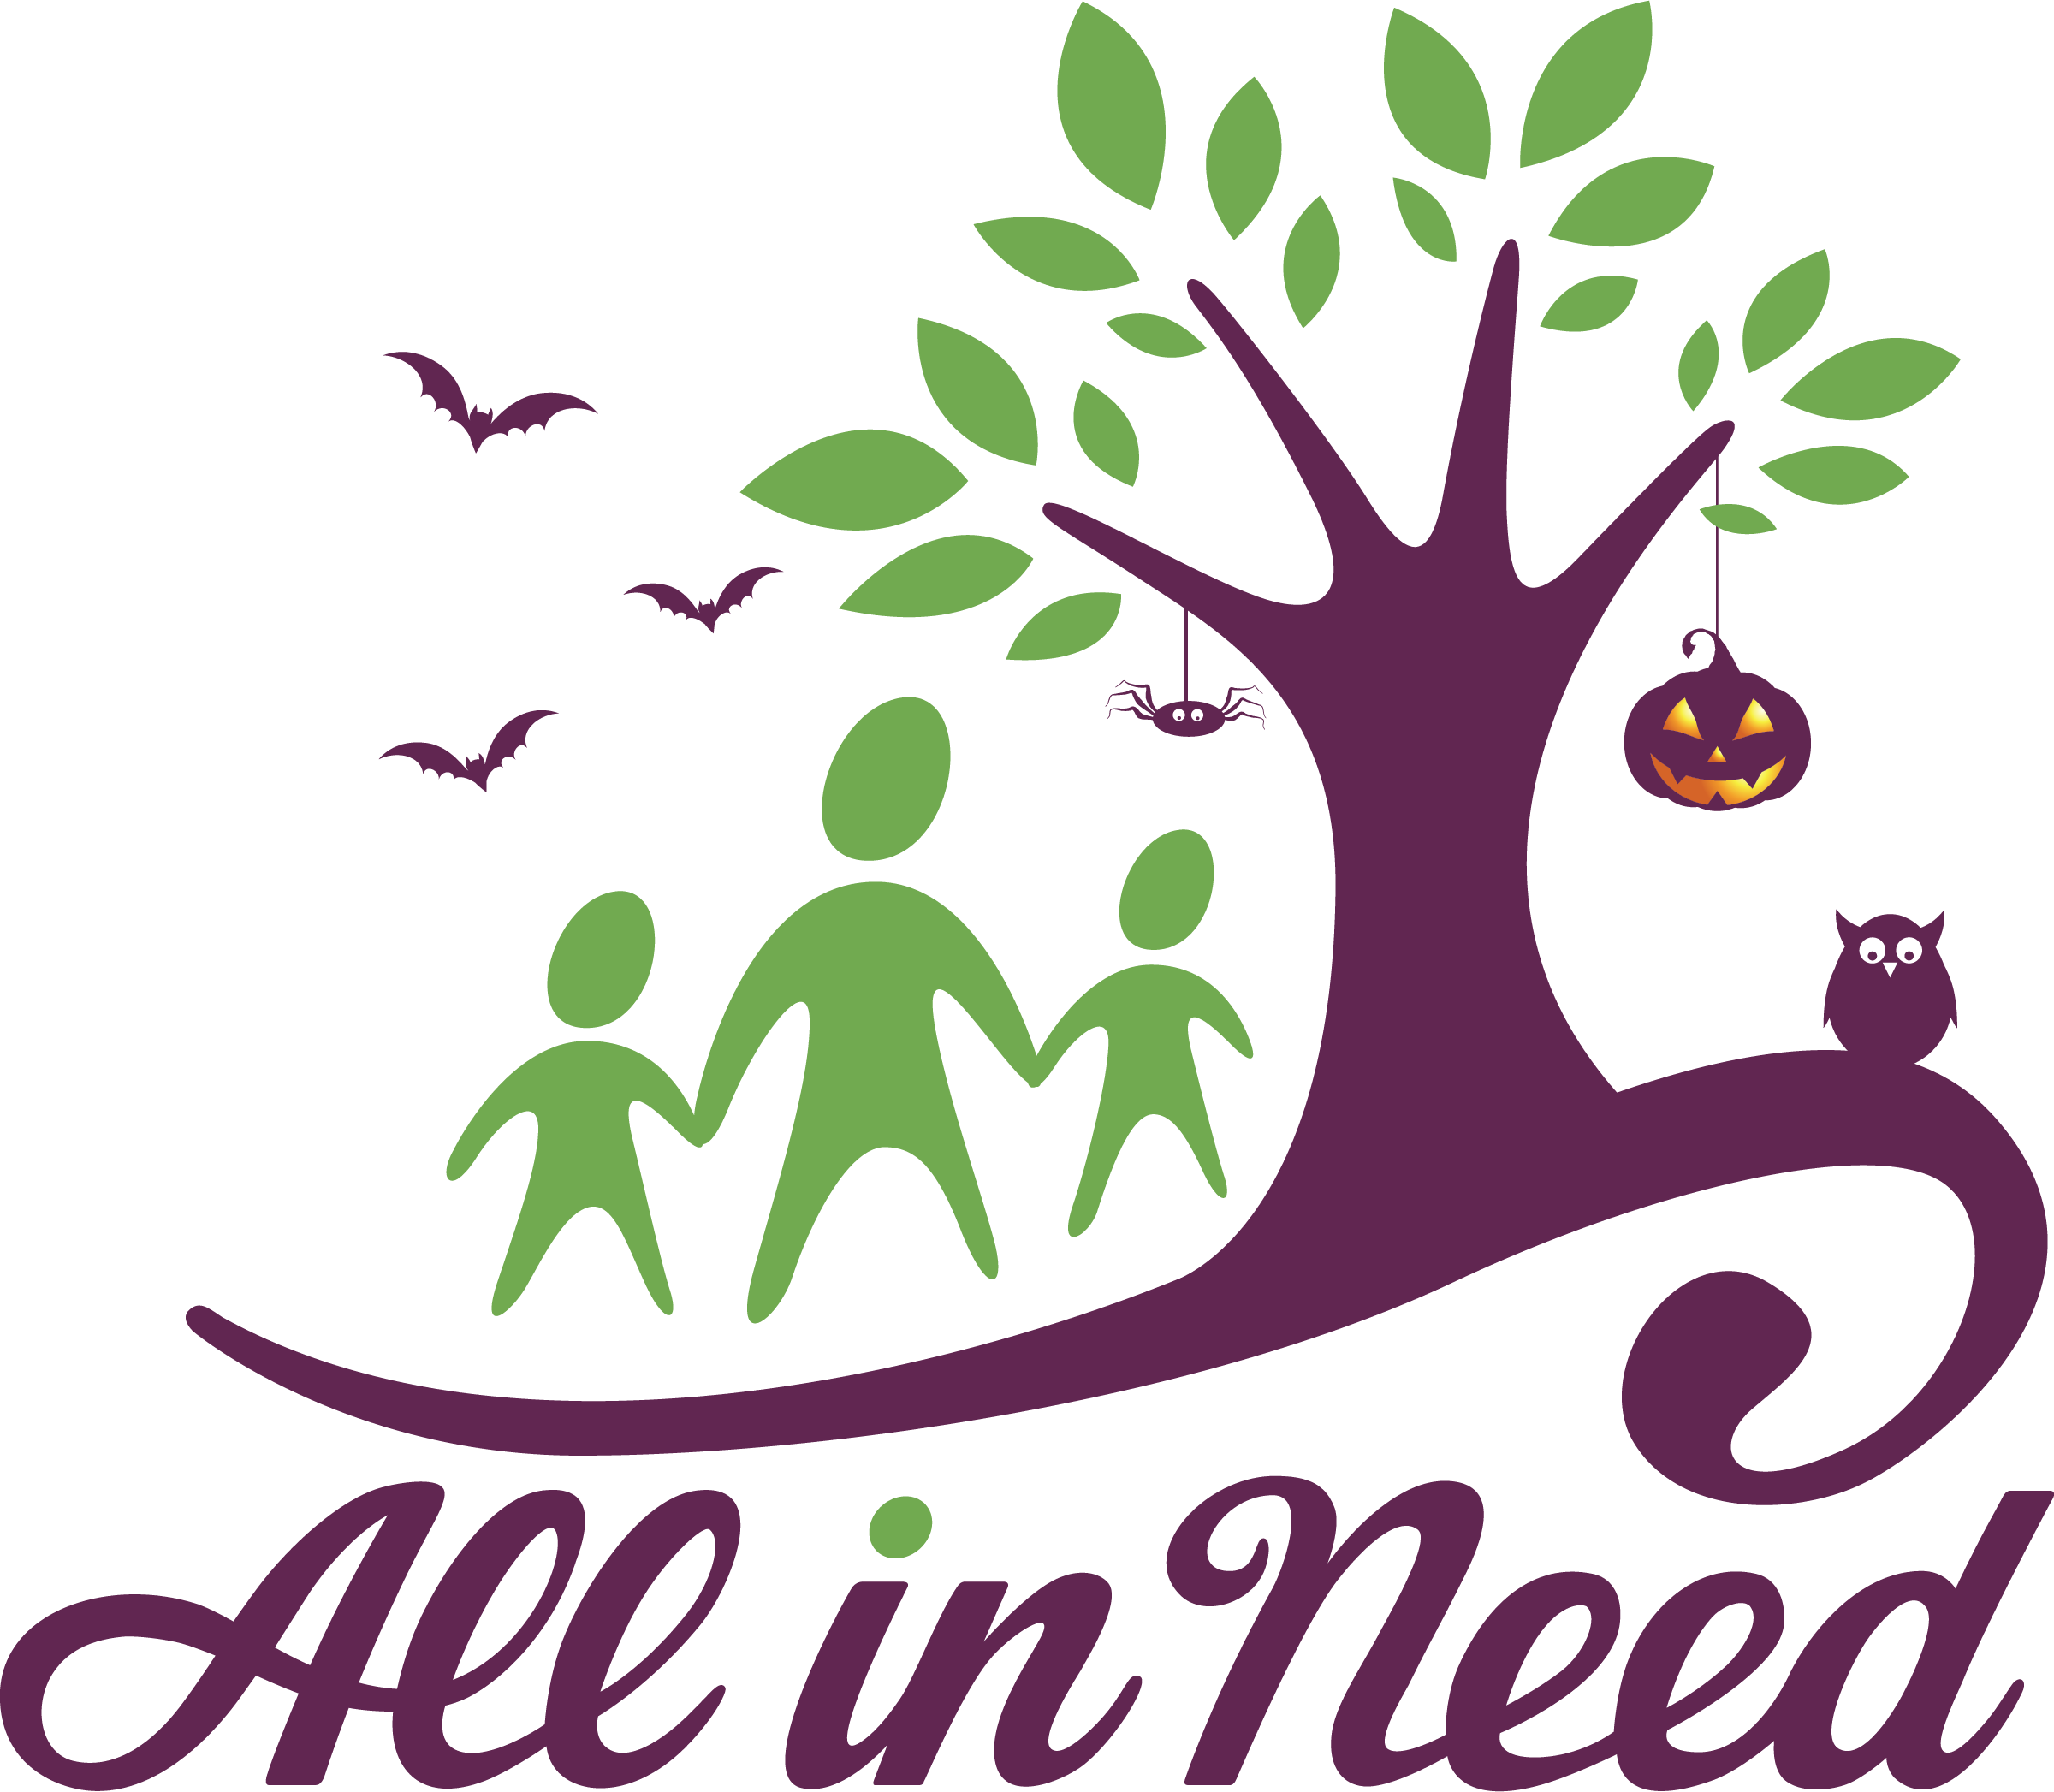 All_In_Need_Event Logos_HALLOWEEN.png